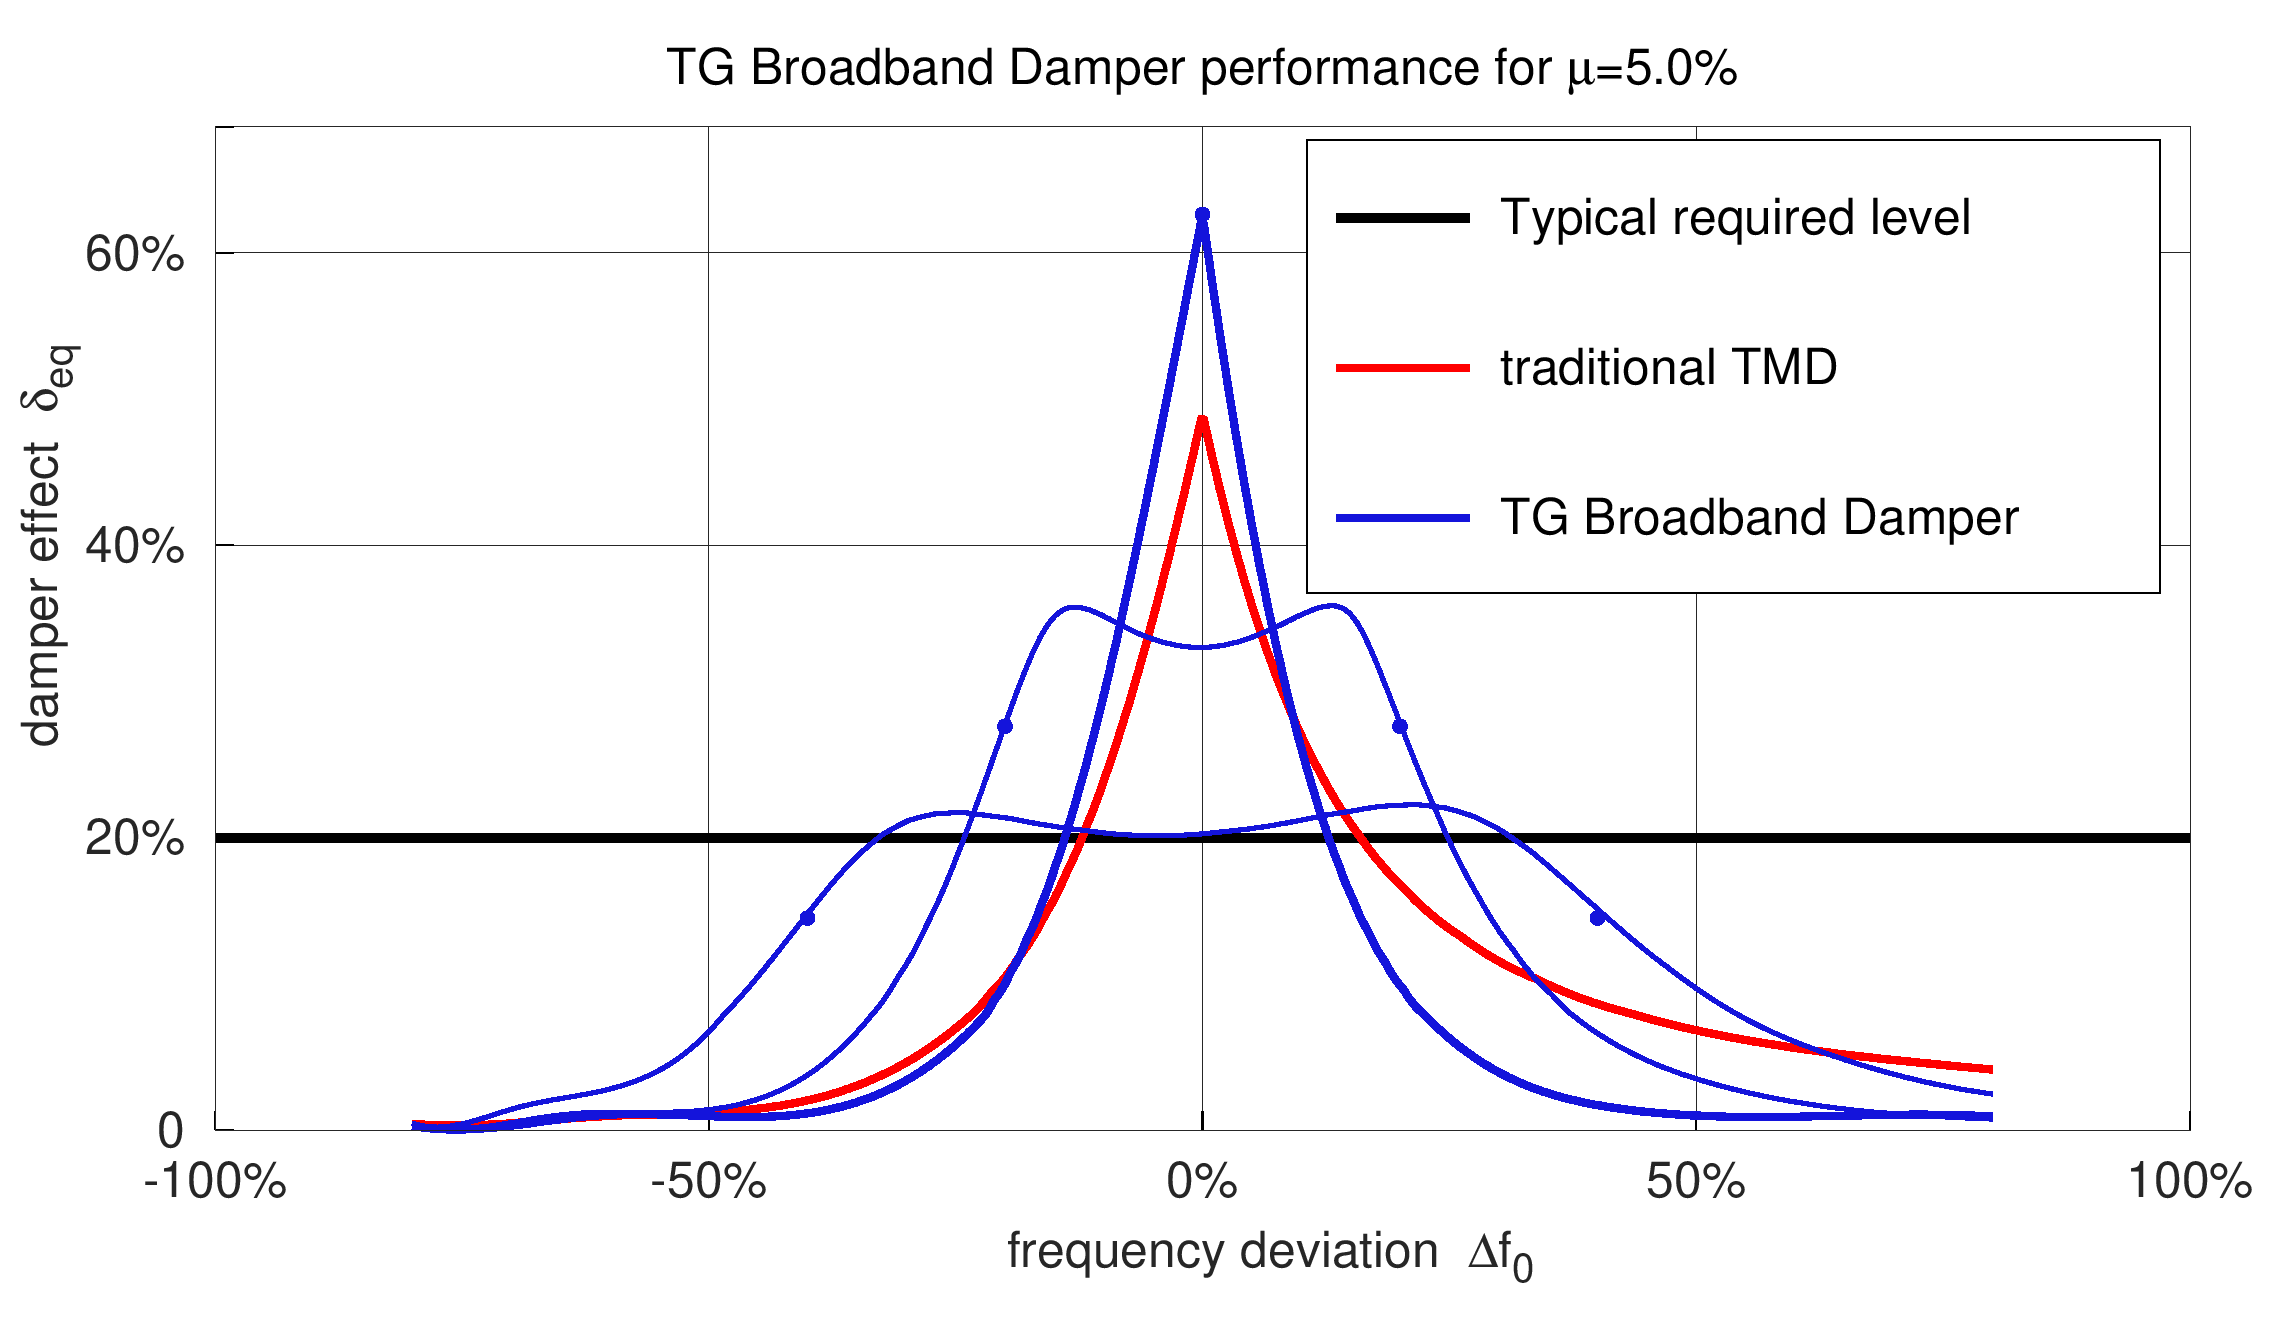 The TG Broadband Damper is robust to changes in the structure frequency, compared to a traditional TMD.